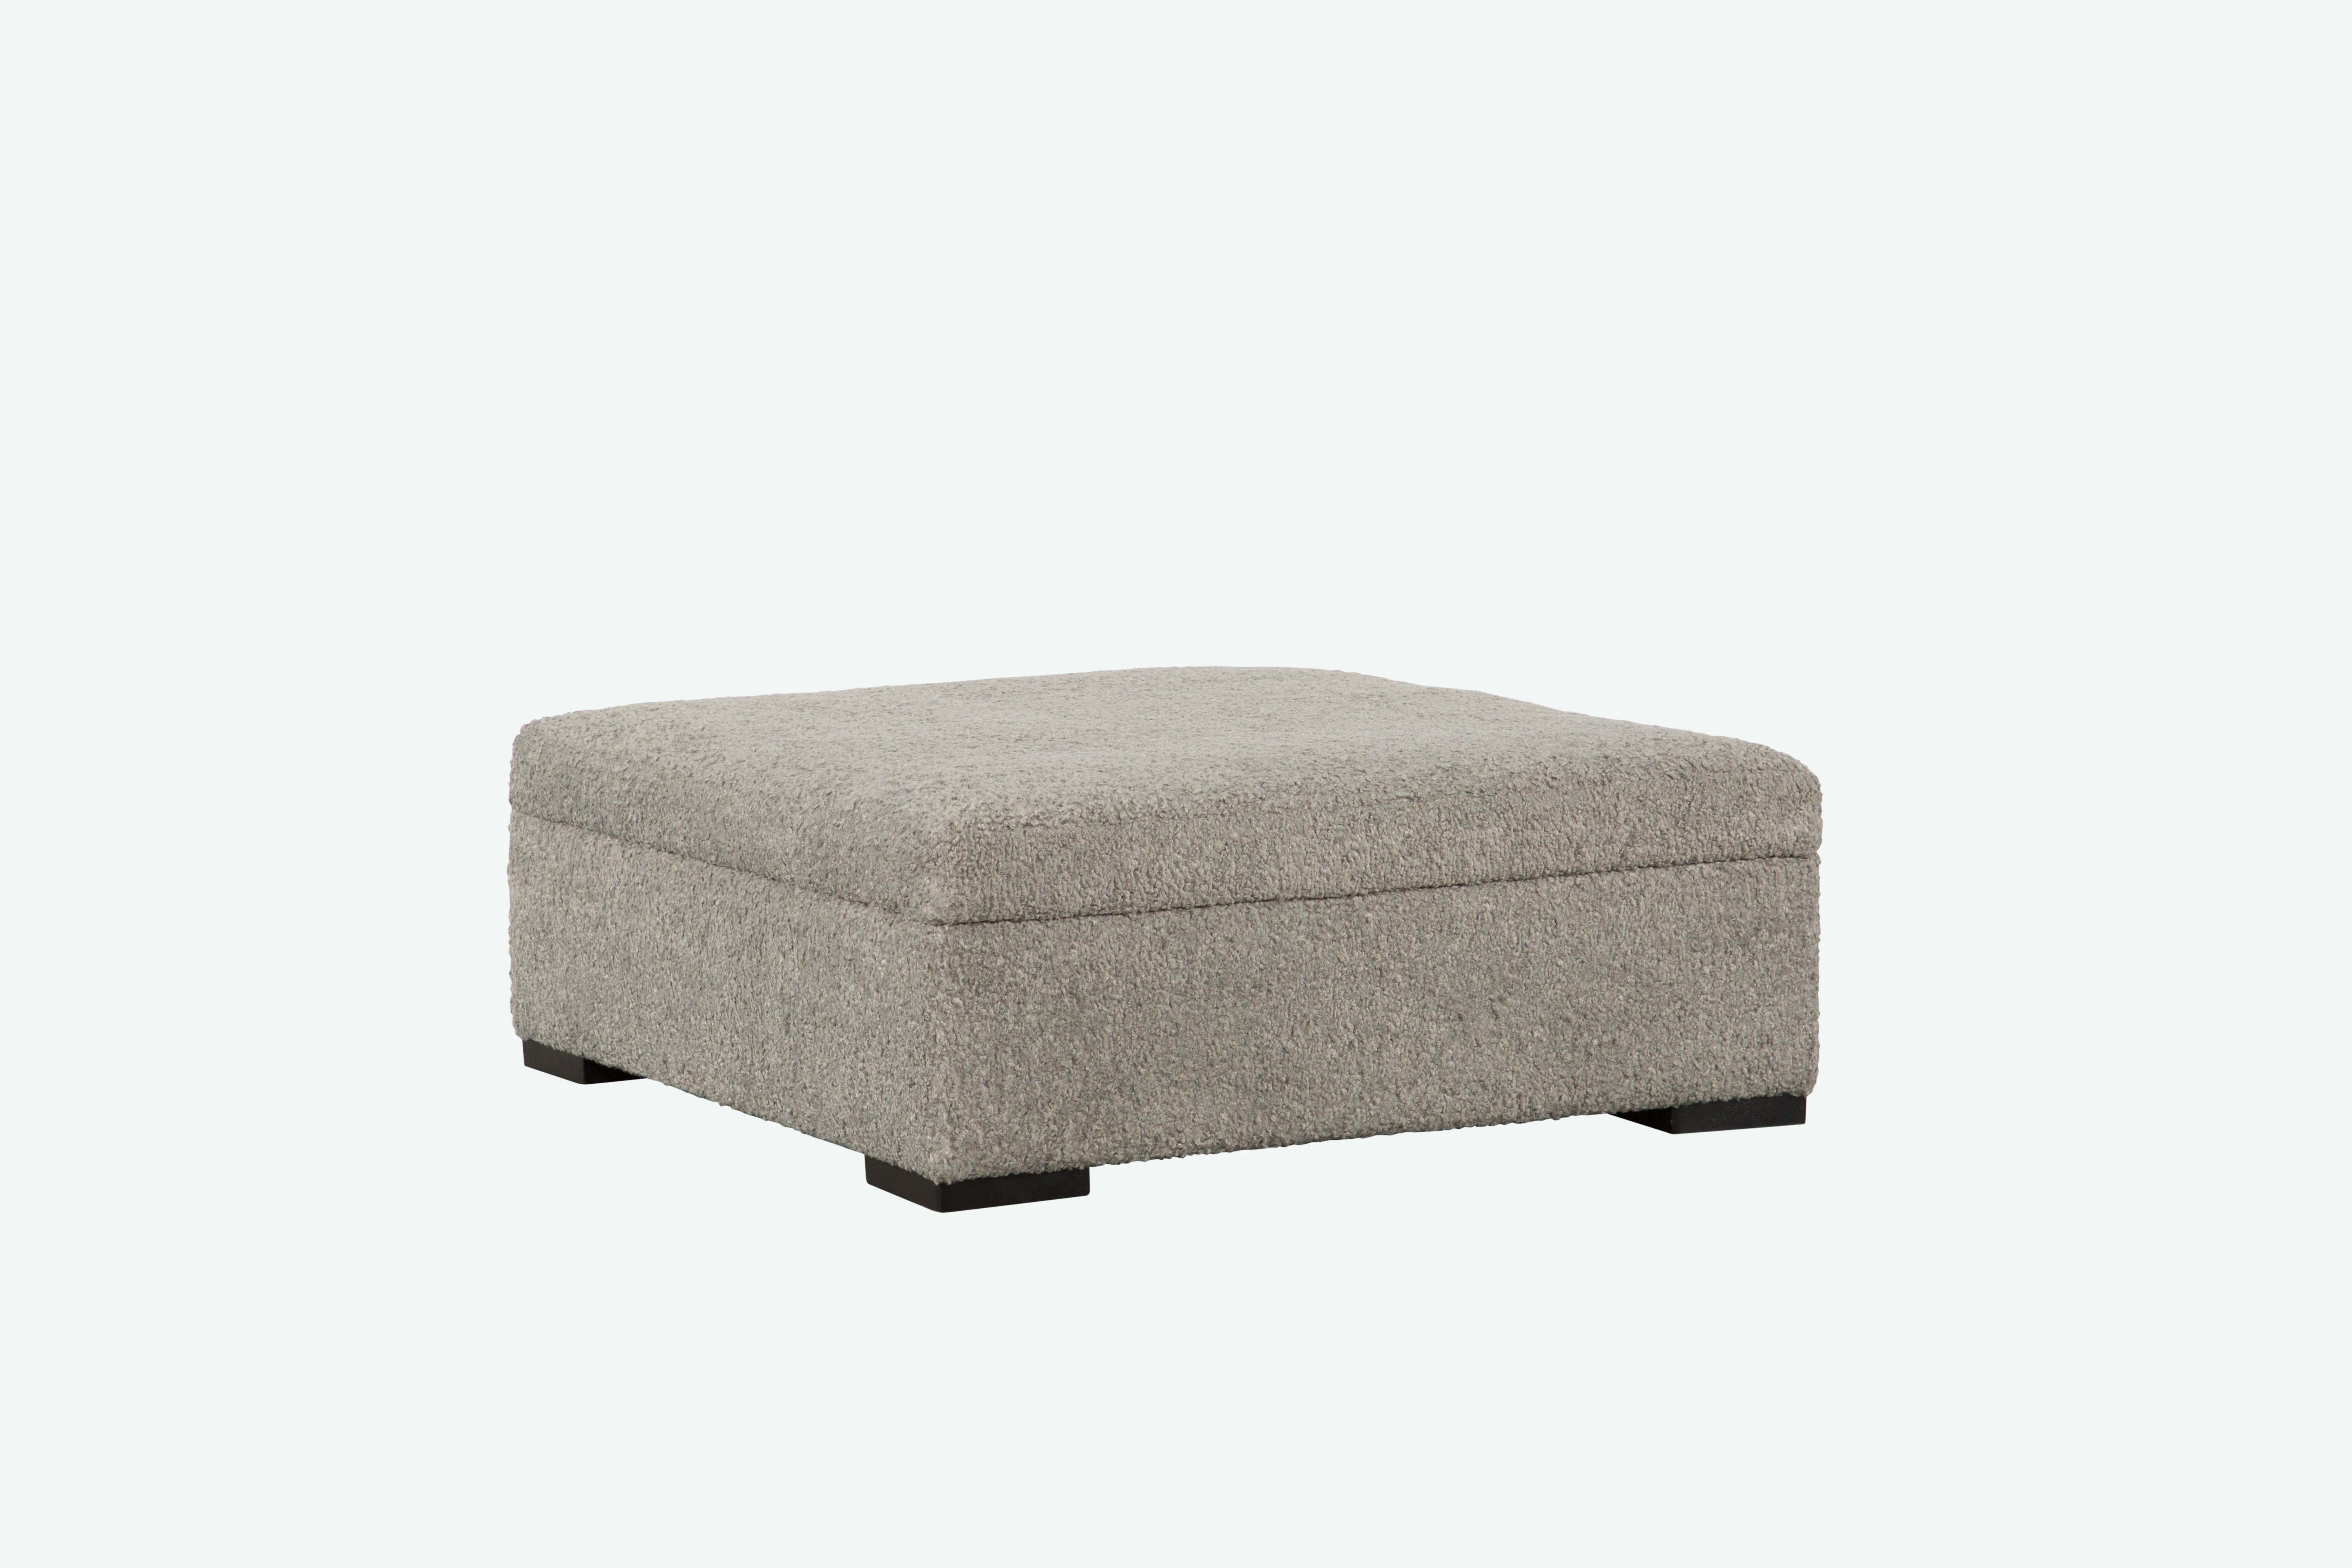 Nate Berkus Just Launched A Home Collection With Hubby Jeremiah in Matteo Arm Sofa Chairs by Nate Berkus and Jeremiah Brent